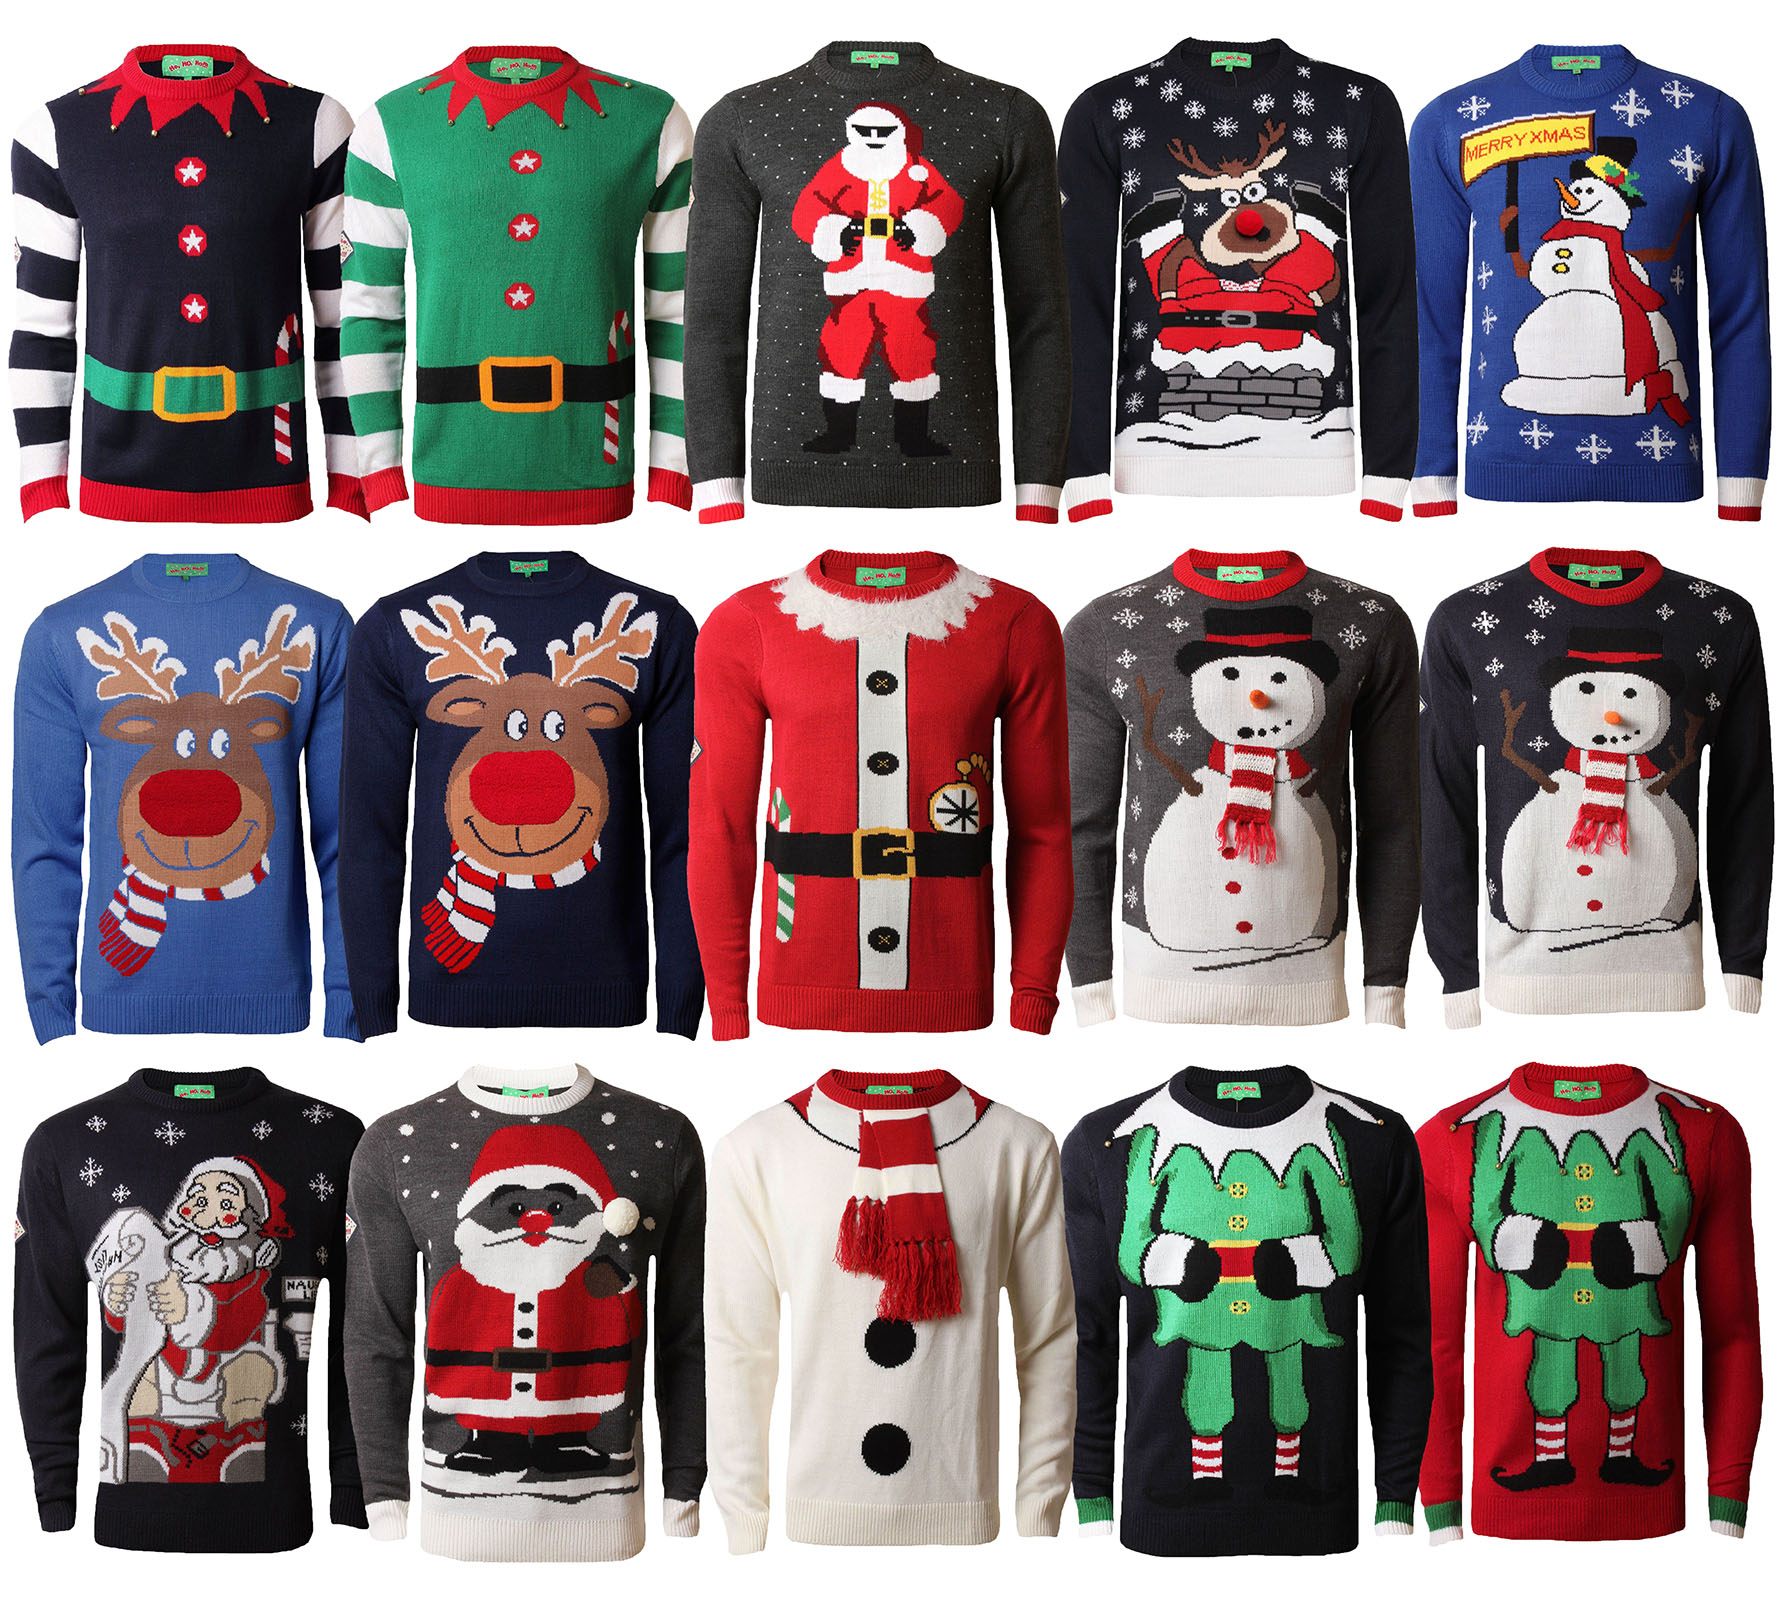 Novelty Christmas Jumpers Knitting Pattern : Christmas jumpers new novelty d xmas knit hohoho santa